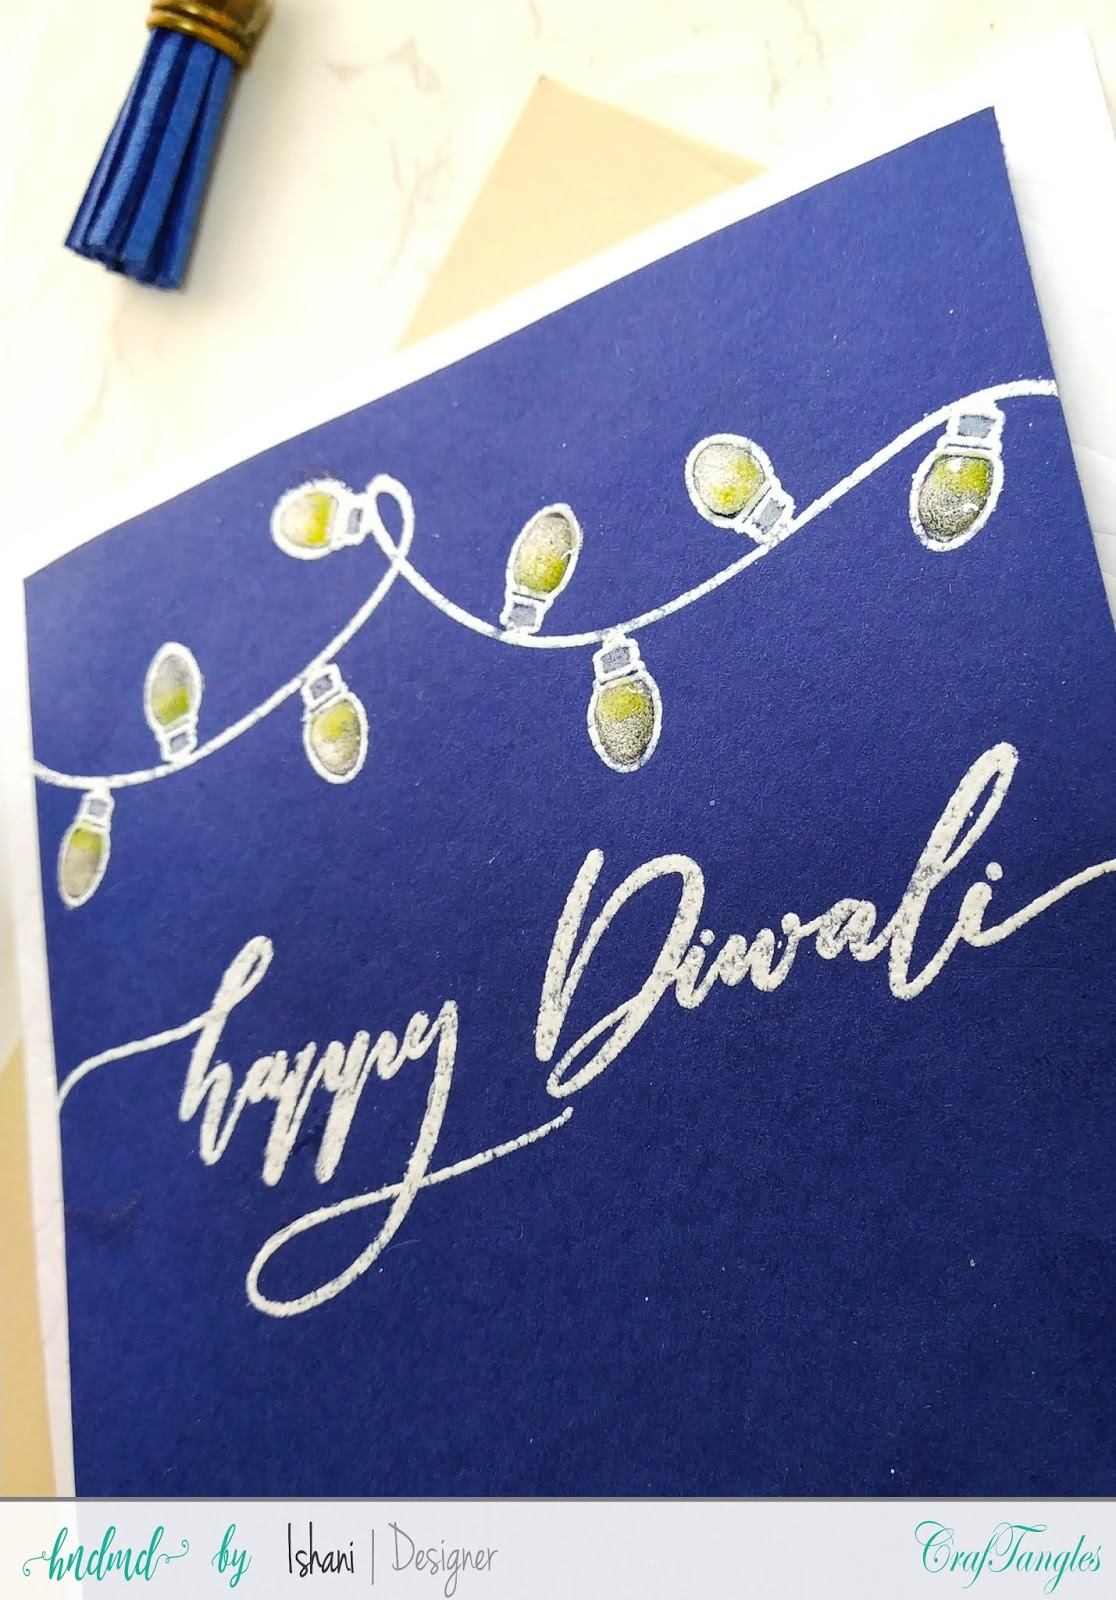 Craftangles Festive lights, Craftangles Diwali sentiments, Diwali cards, easy diwali cards, quick diwali cards, diwali lights card, handmade diwali cards